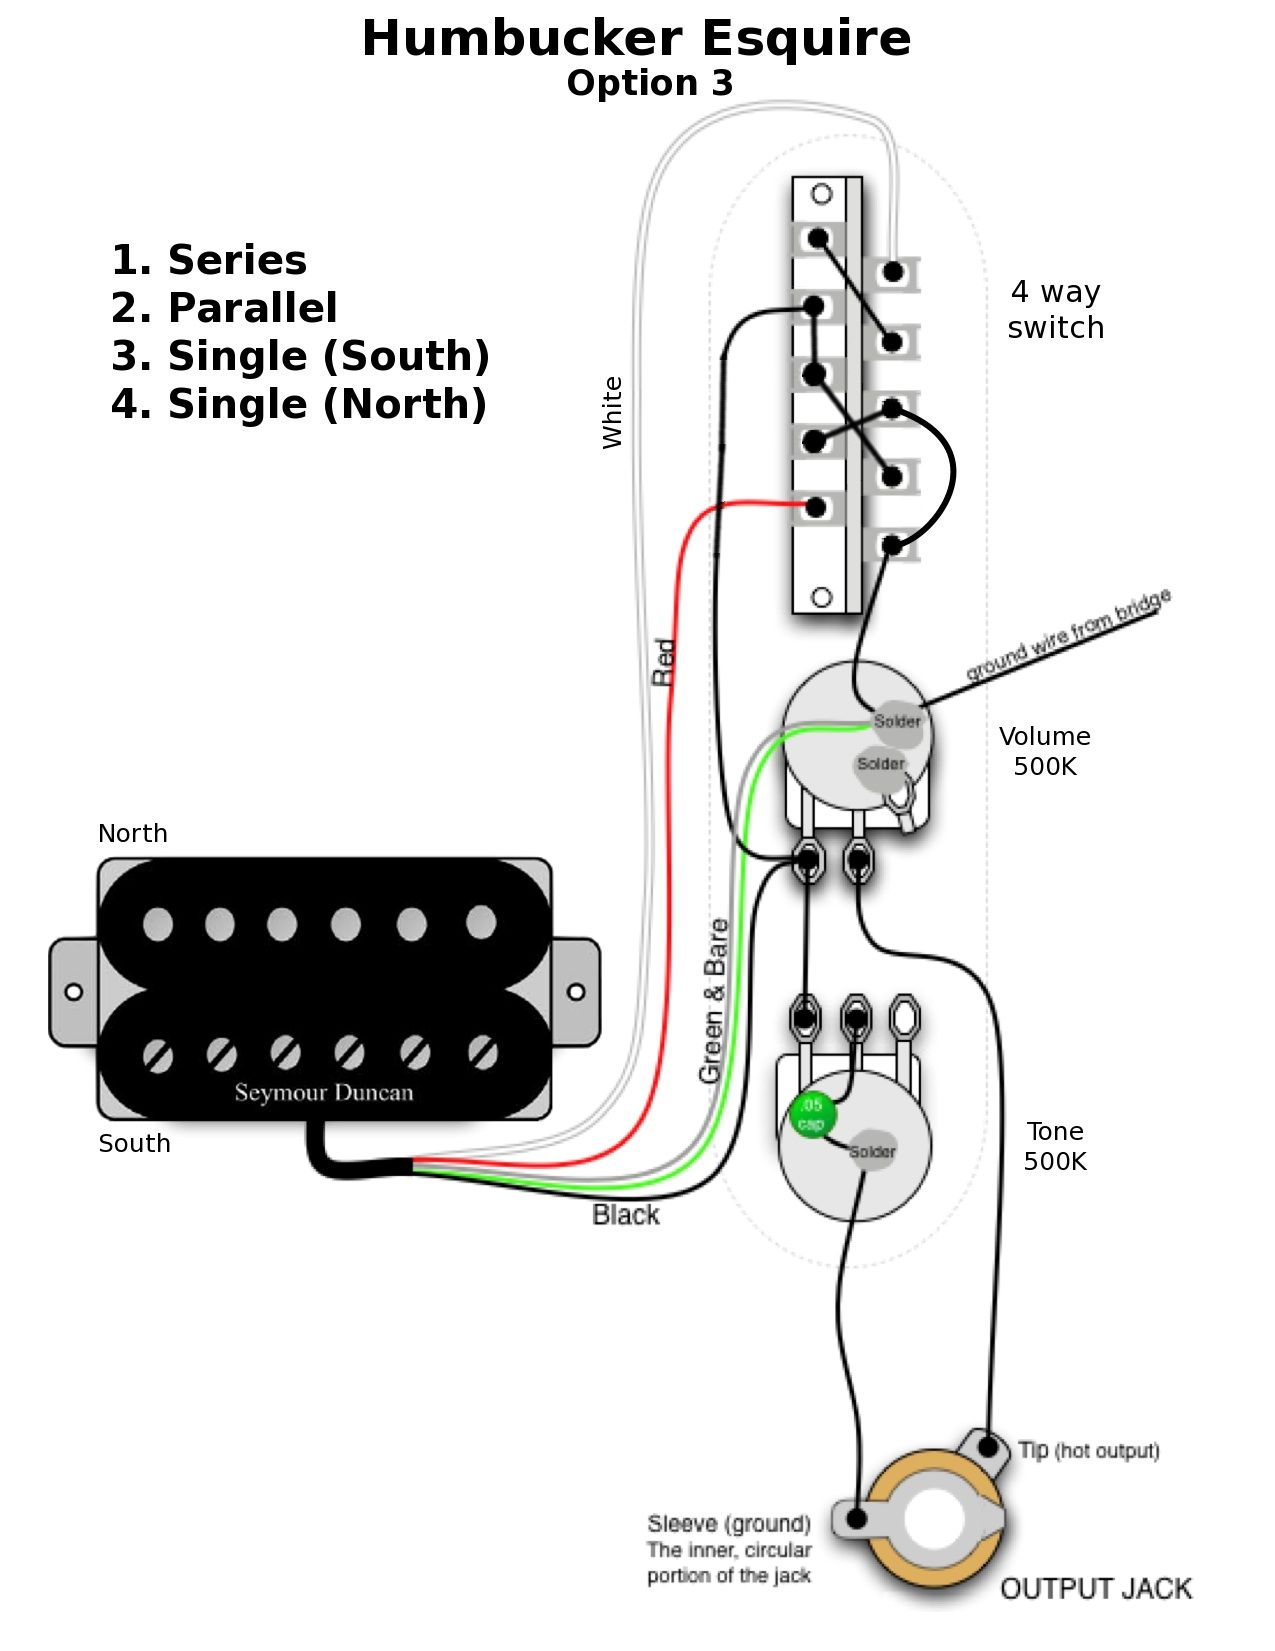 z243s esquire_hb_option_3 guitar wiring diagrams 1 hum 2 single guitar discover your fender esquire wiring diagram at sewacar.co